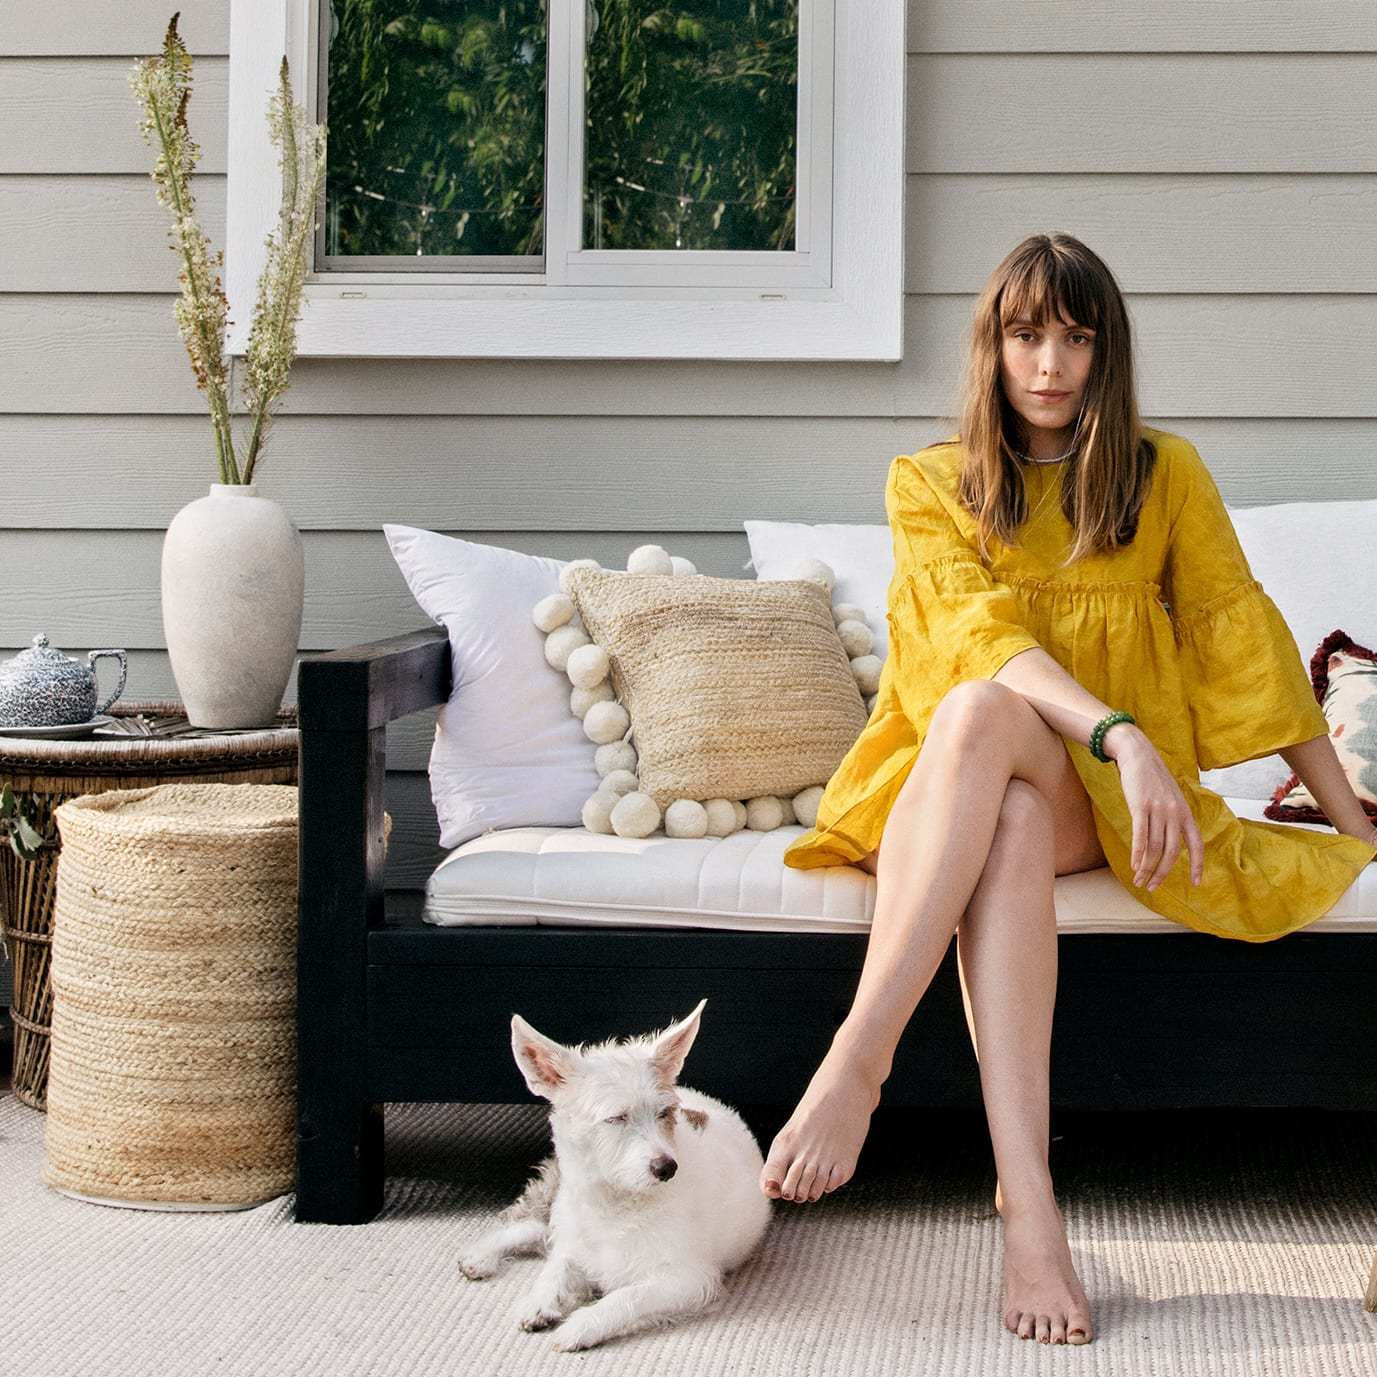 woman in yellow dress sat on outdoor sofa with dog at her feet